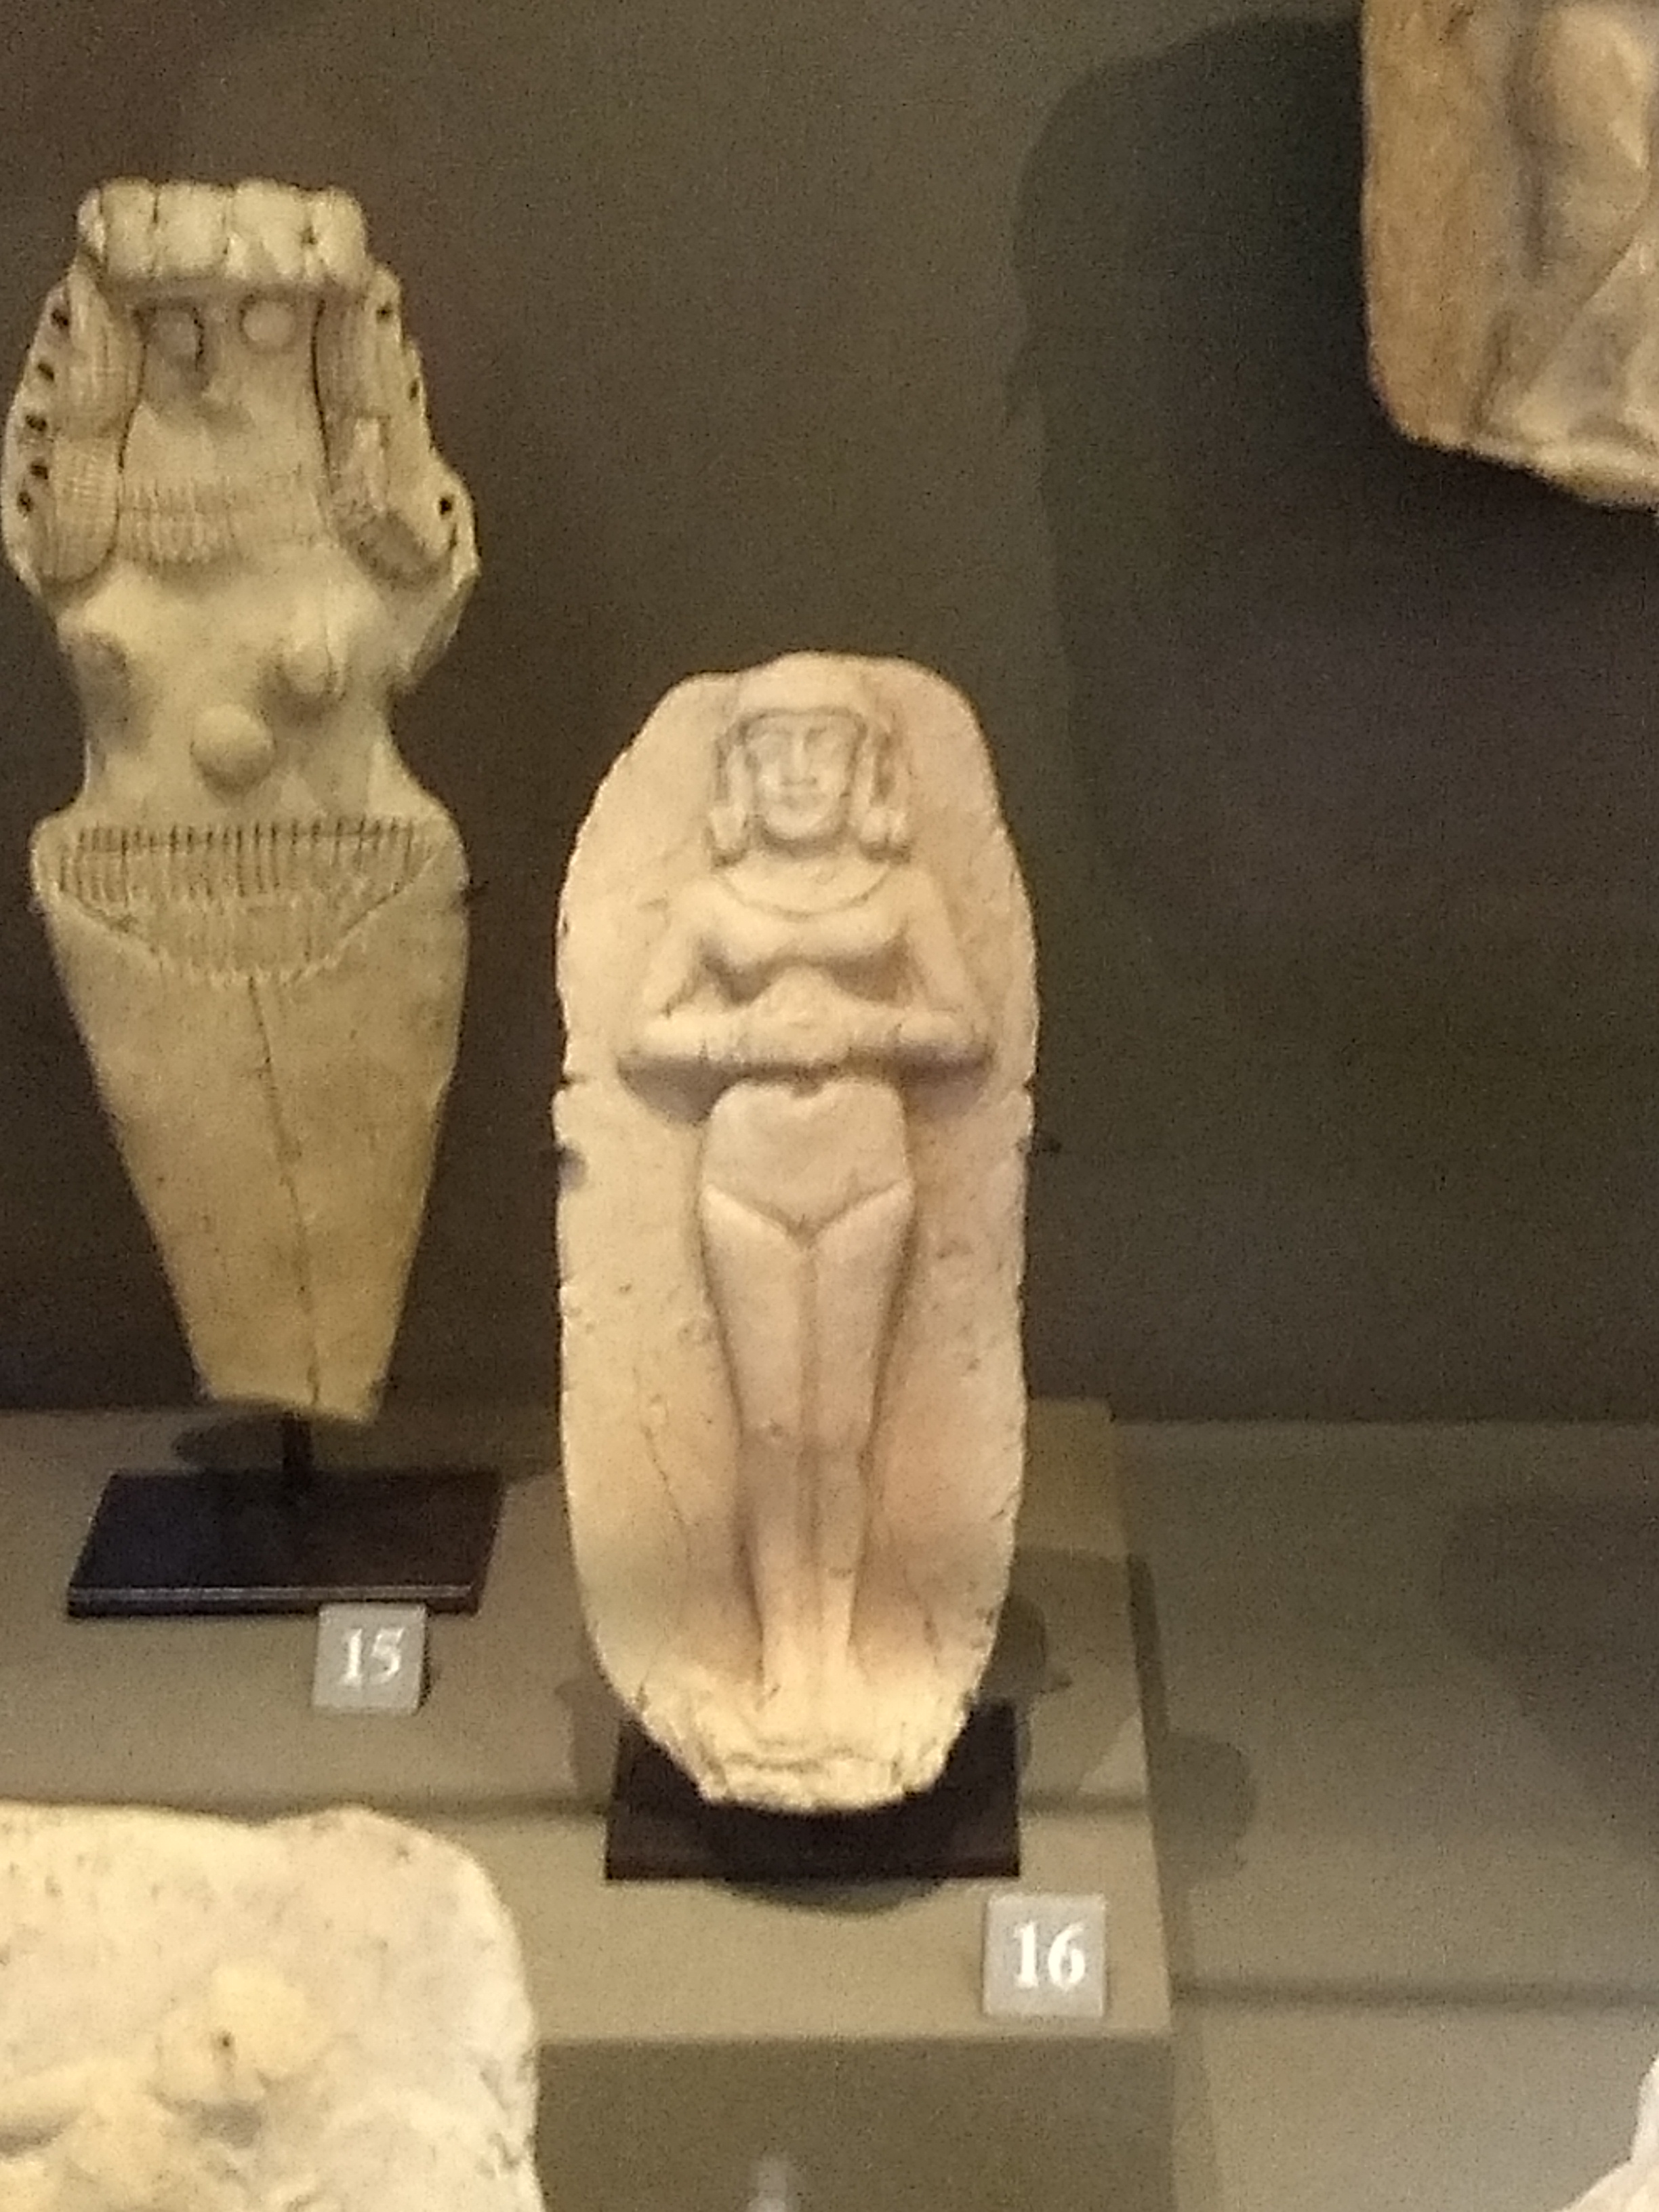 a plaque of a naked woman (or godess) standing with her hands clasped in front of her stomach